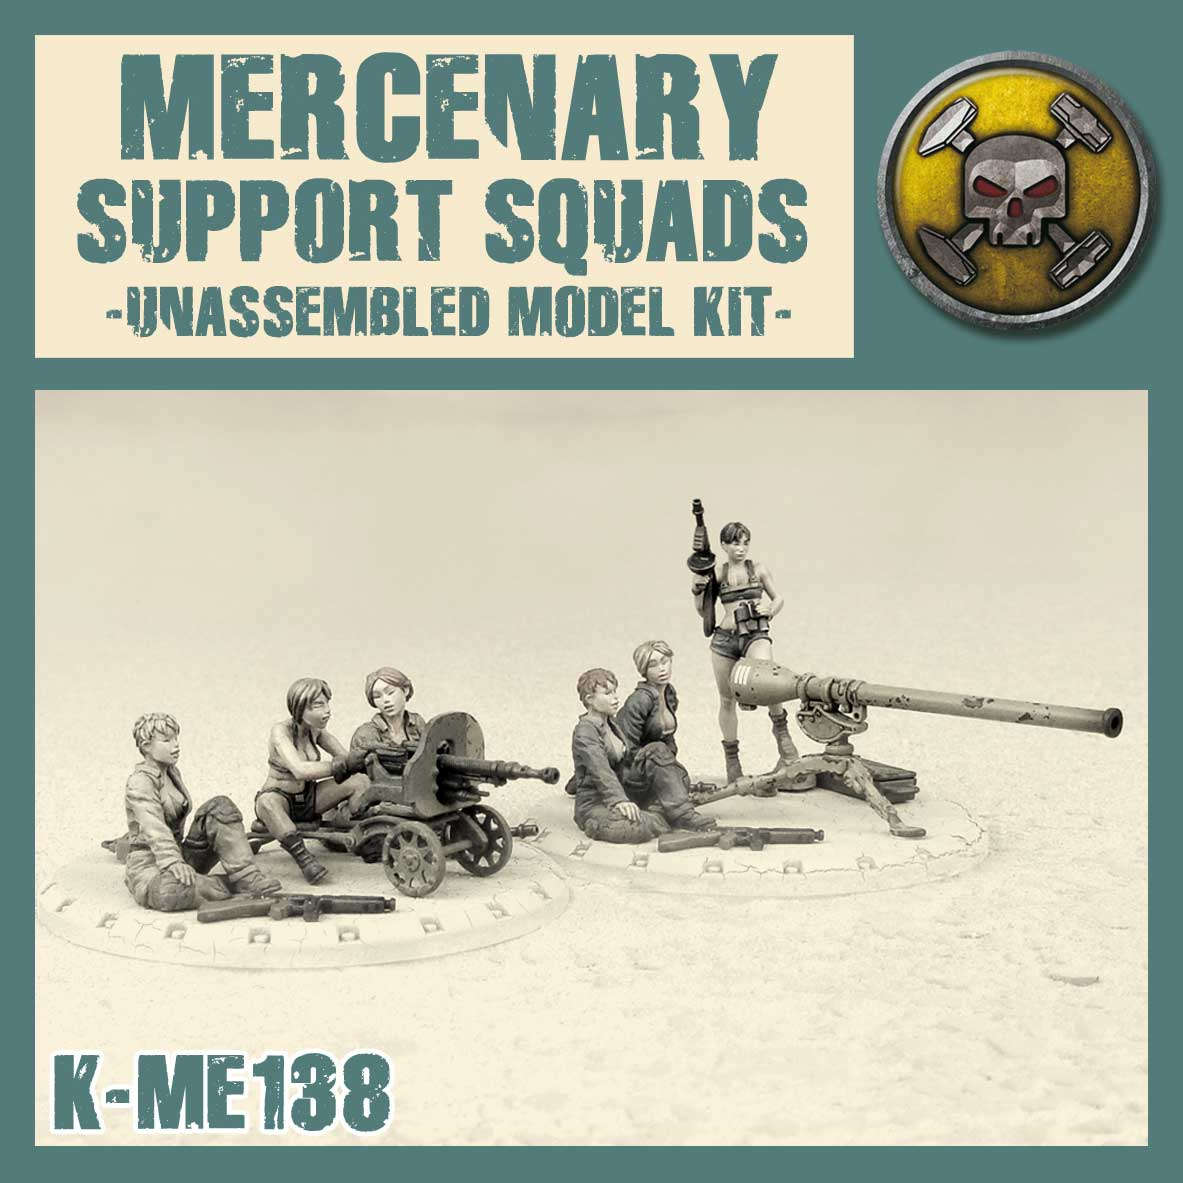 Mercenary Support Squads Kit